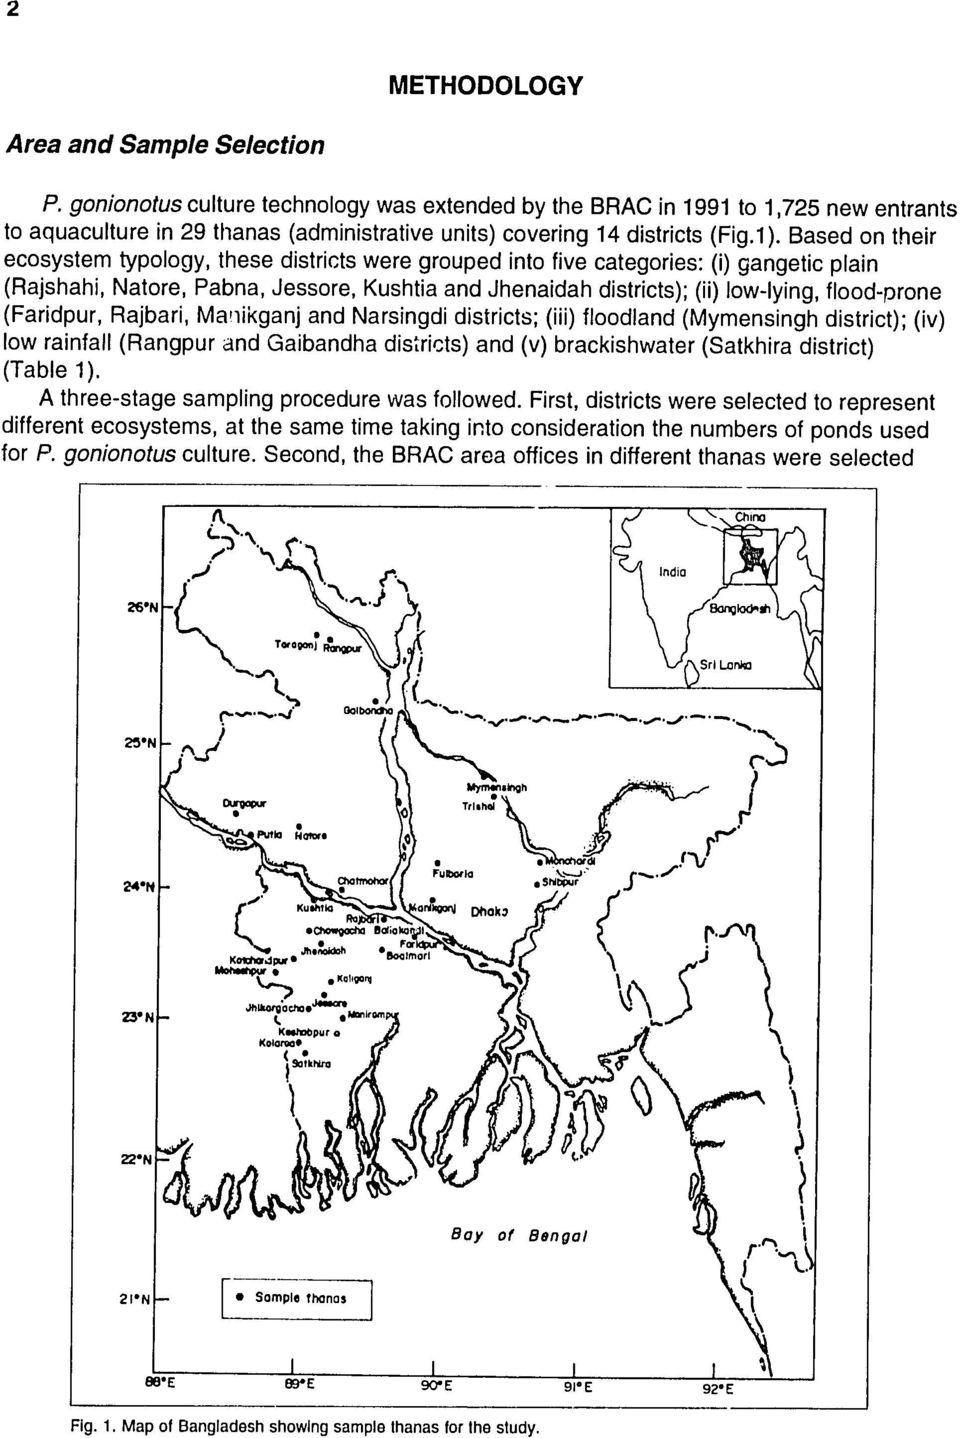 Based on their ecosystem typology, these districts were grouped into five categories: (i) gangetic plain (Rajshahi, Natore, Pabna, Jessore, Kushtia and Jhenaidah districts); (ii) low-lying,